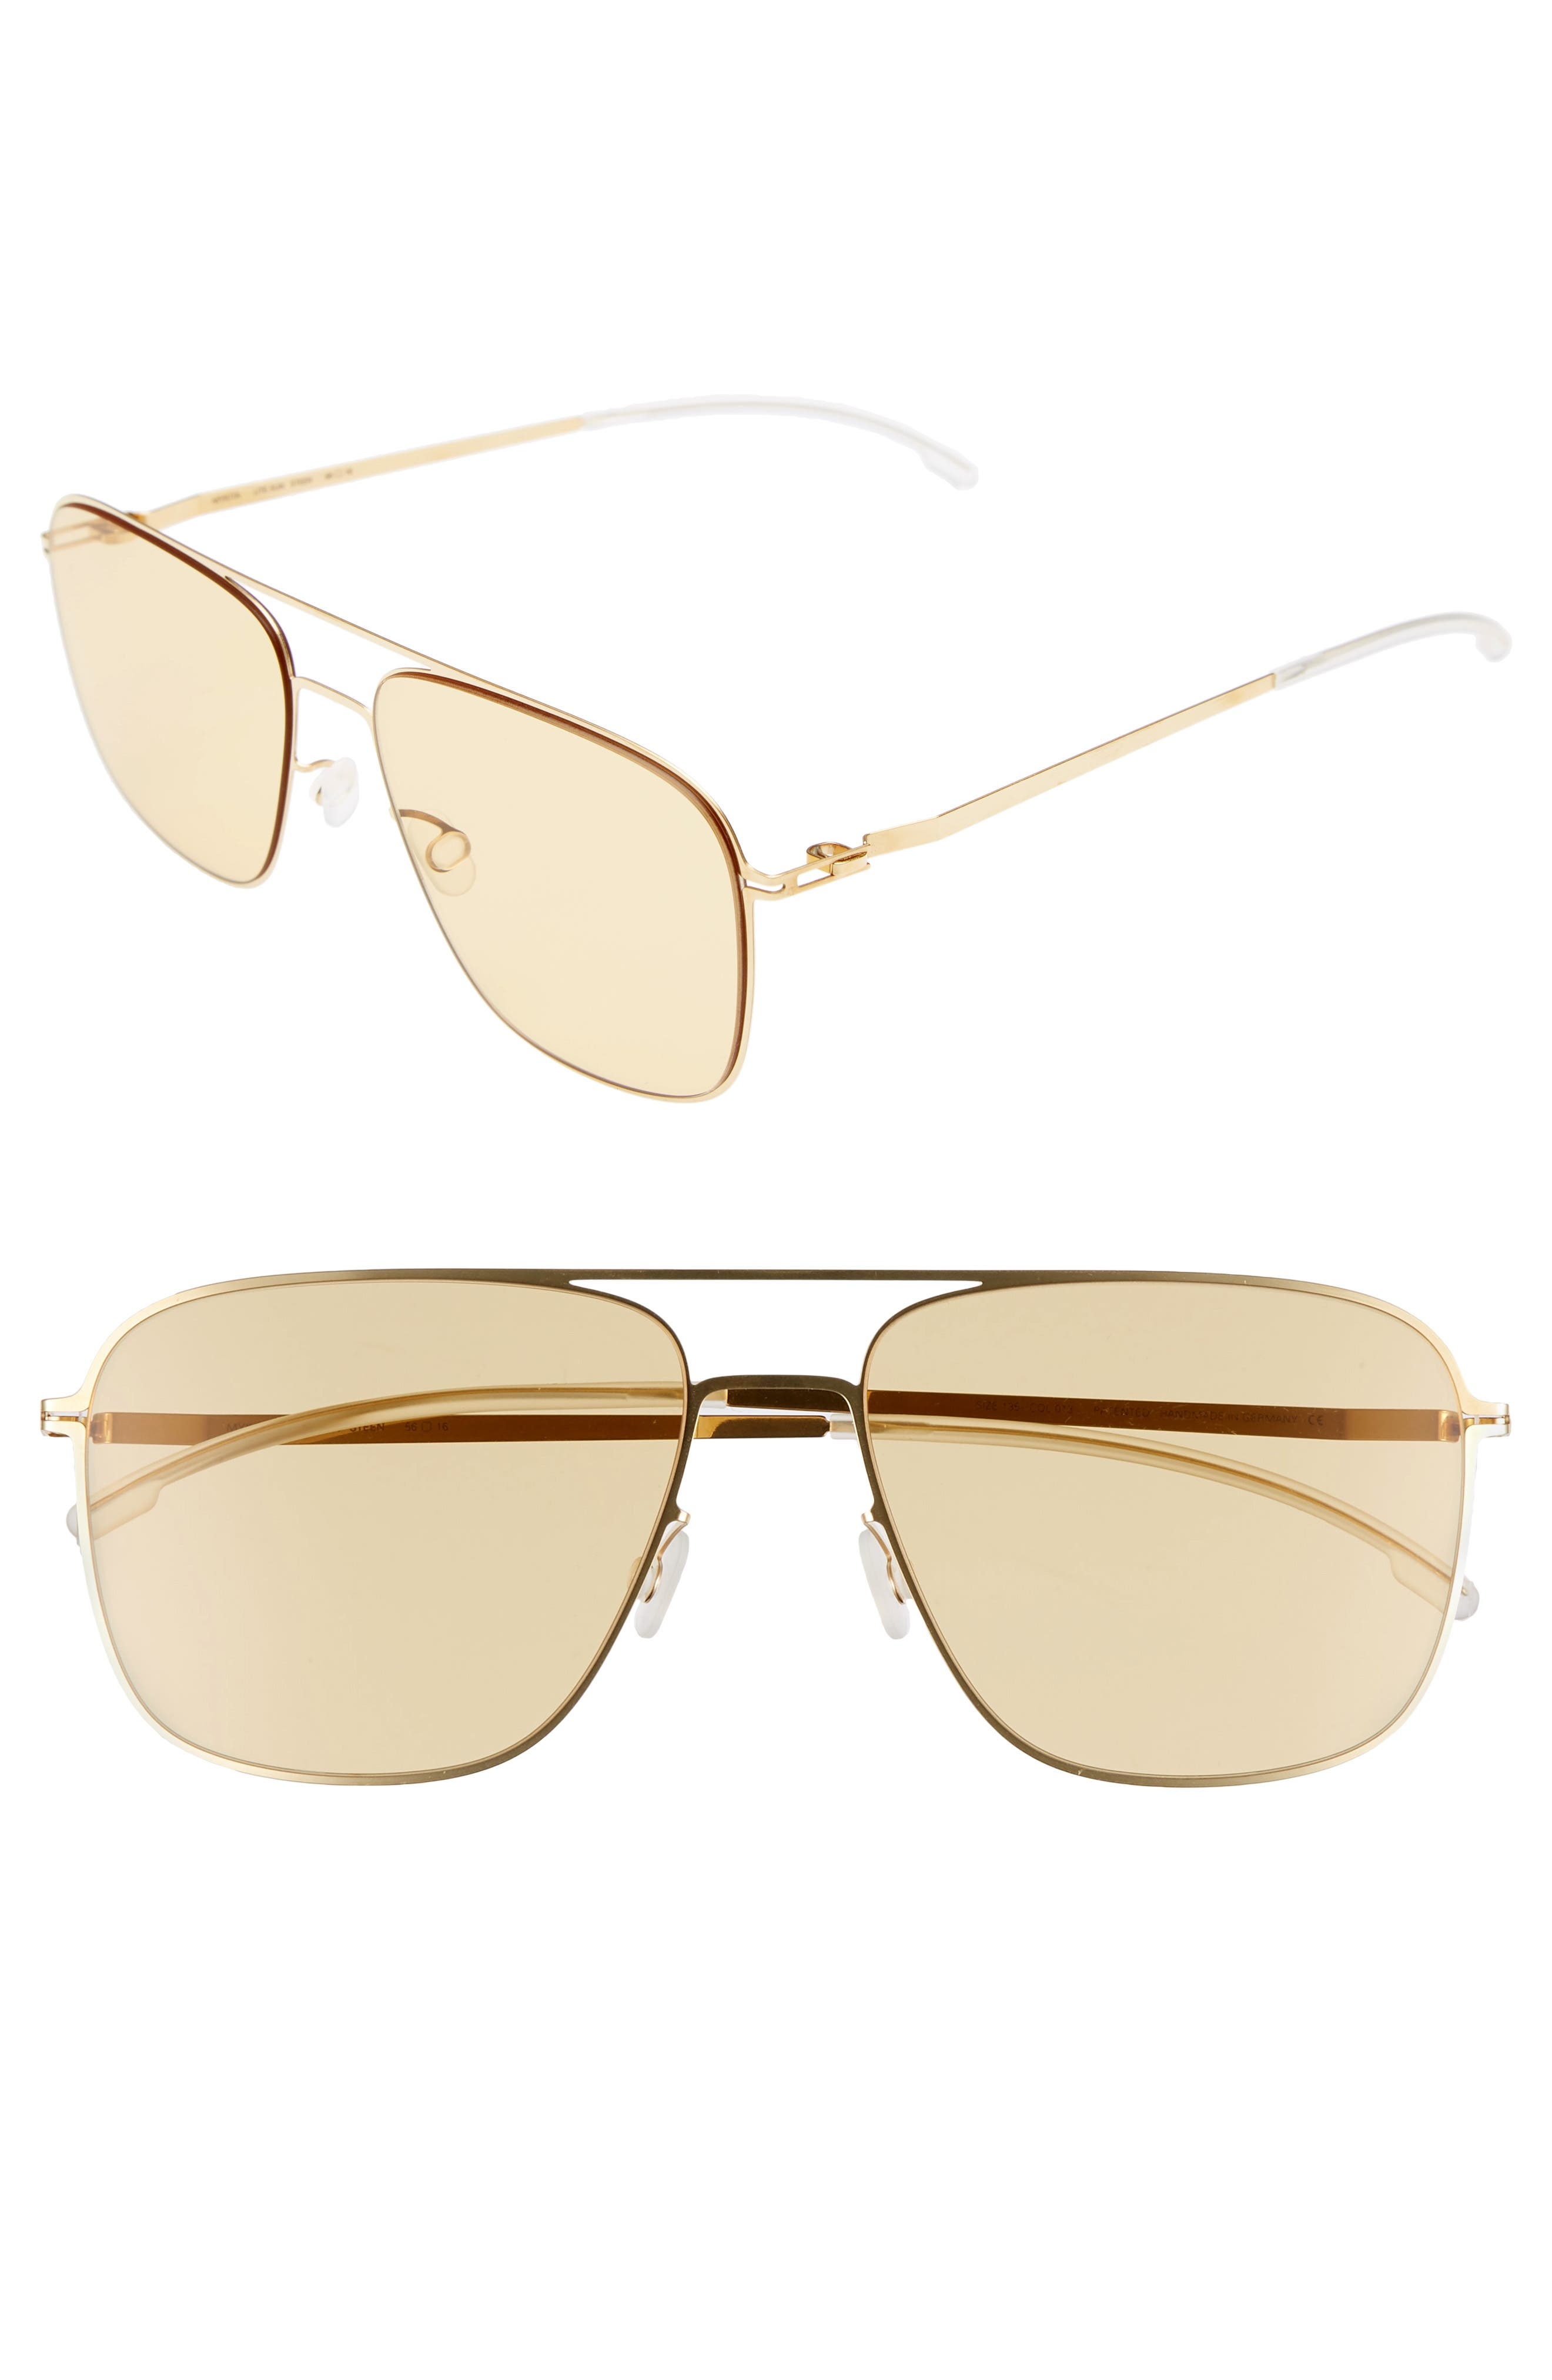 Steen 56mm Aviator Sunglasses,                             Main thumbnail 1, color,                             228